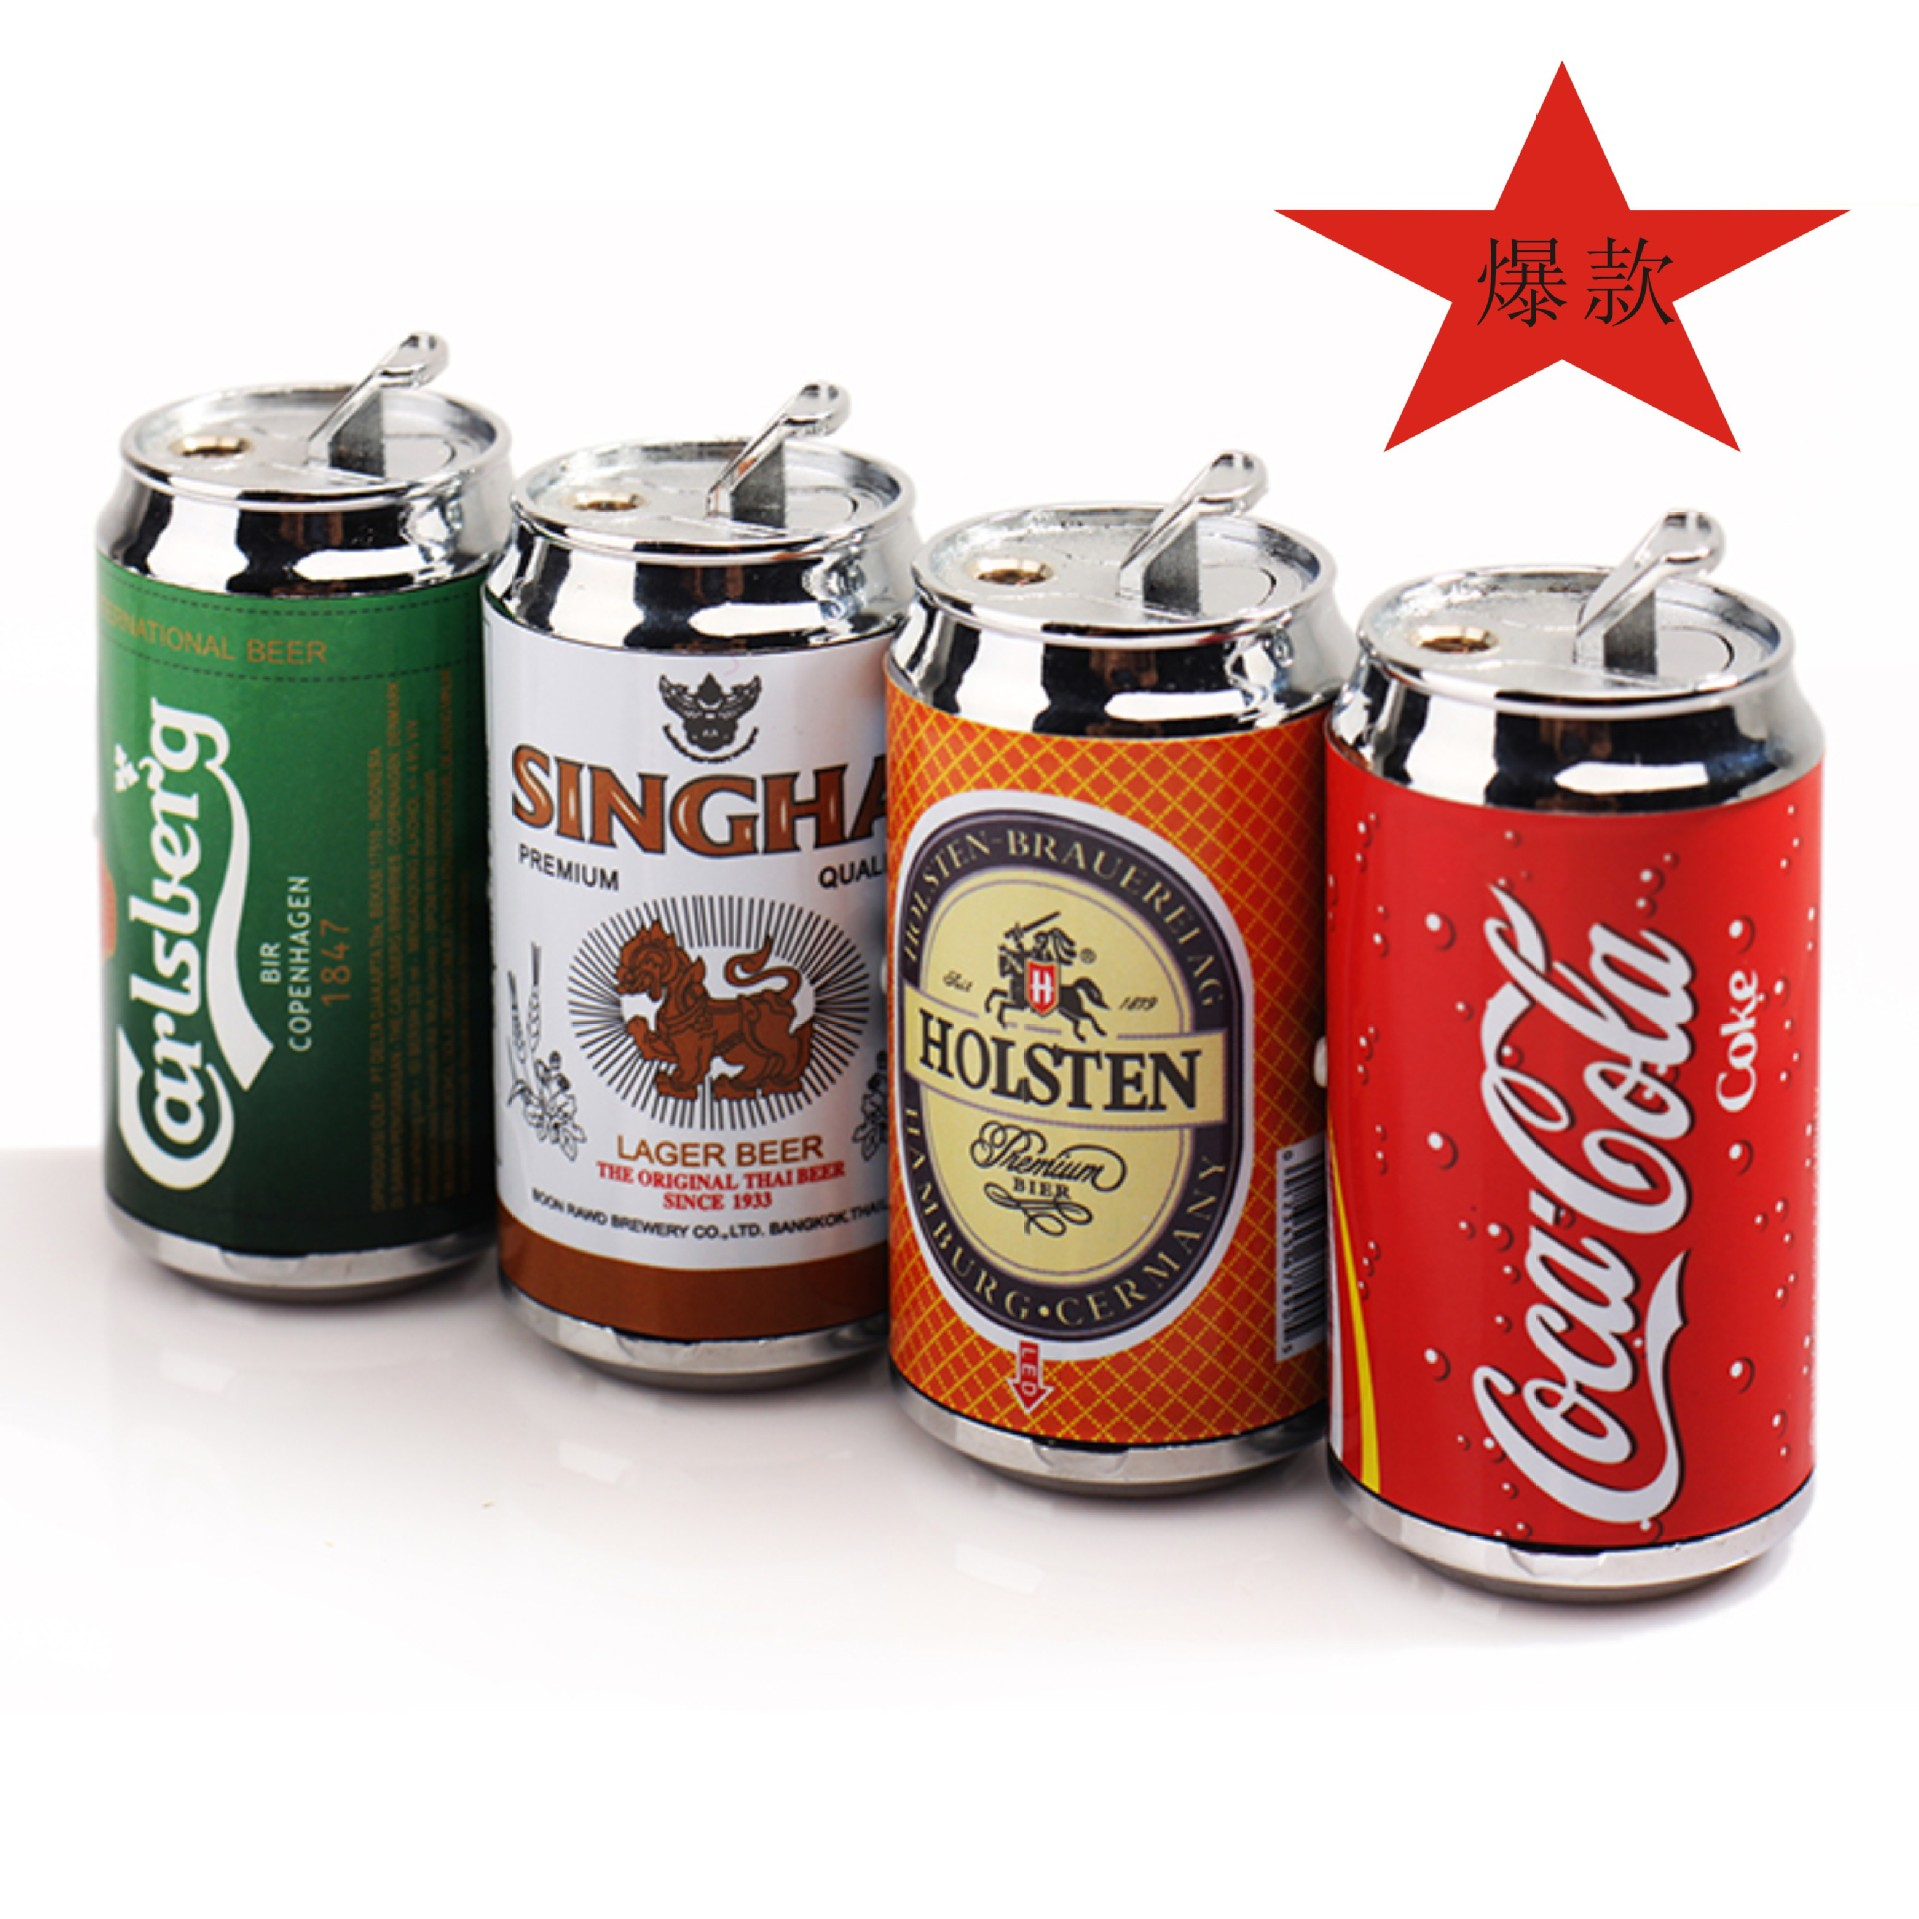 Led Lighter Cans Of Beer Bottles Wholesale Creative Personality Lighter Gas Lighter Vintage Lighter Butane Lighter Gas(China (Mainland))